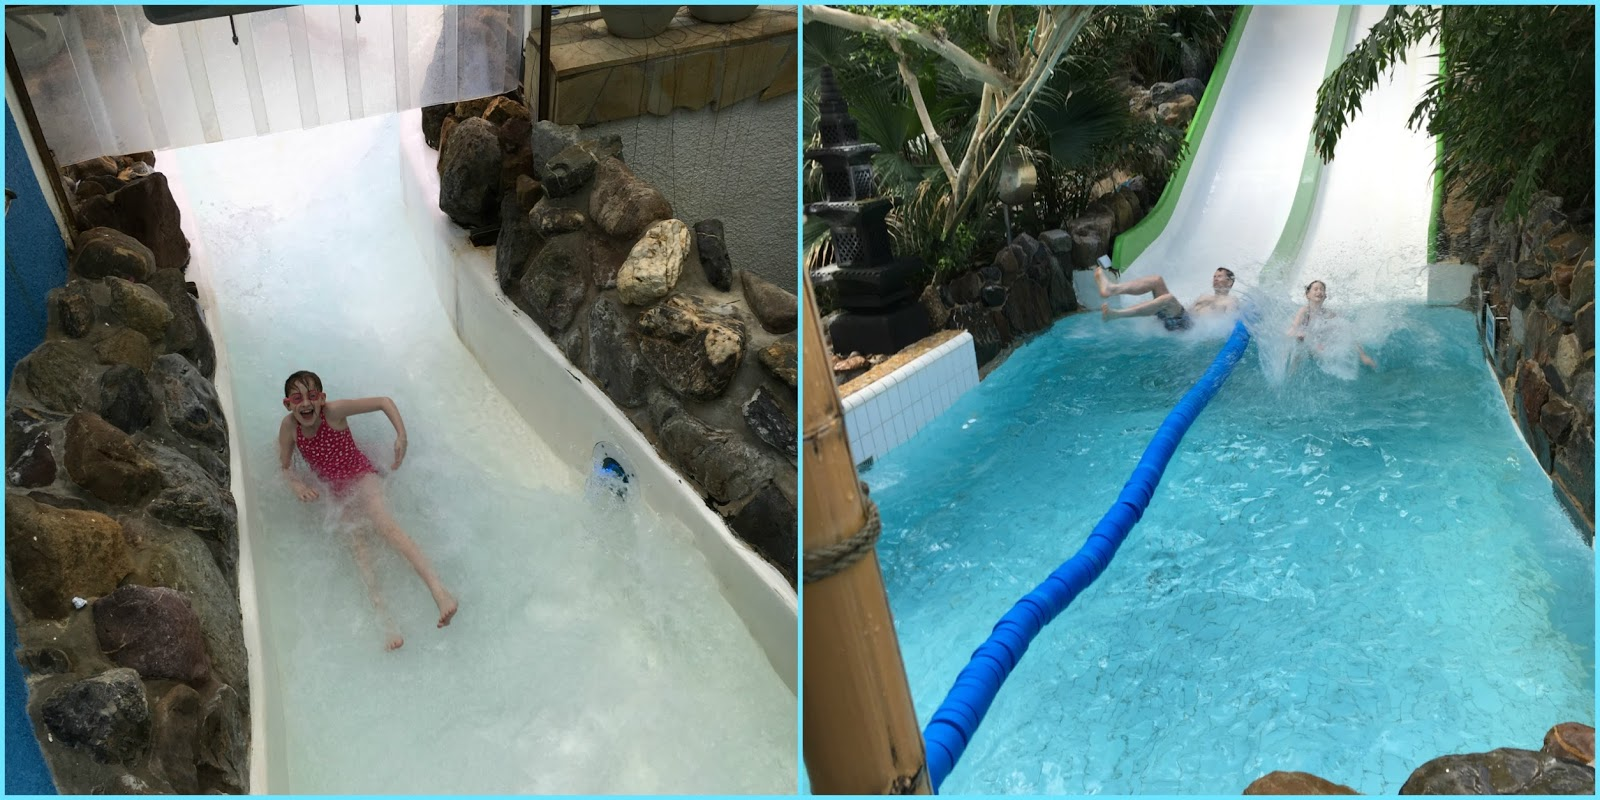 Siblings at center parcs april 2016 steph 39 s two girls - Elveden forest centre parcs swimming pool ...